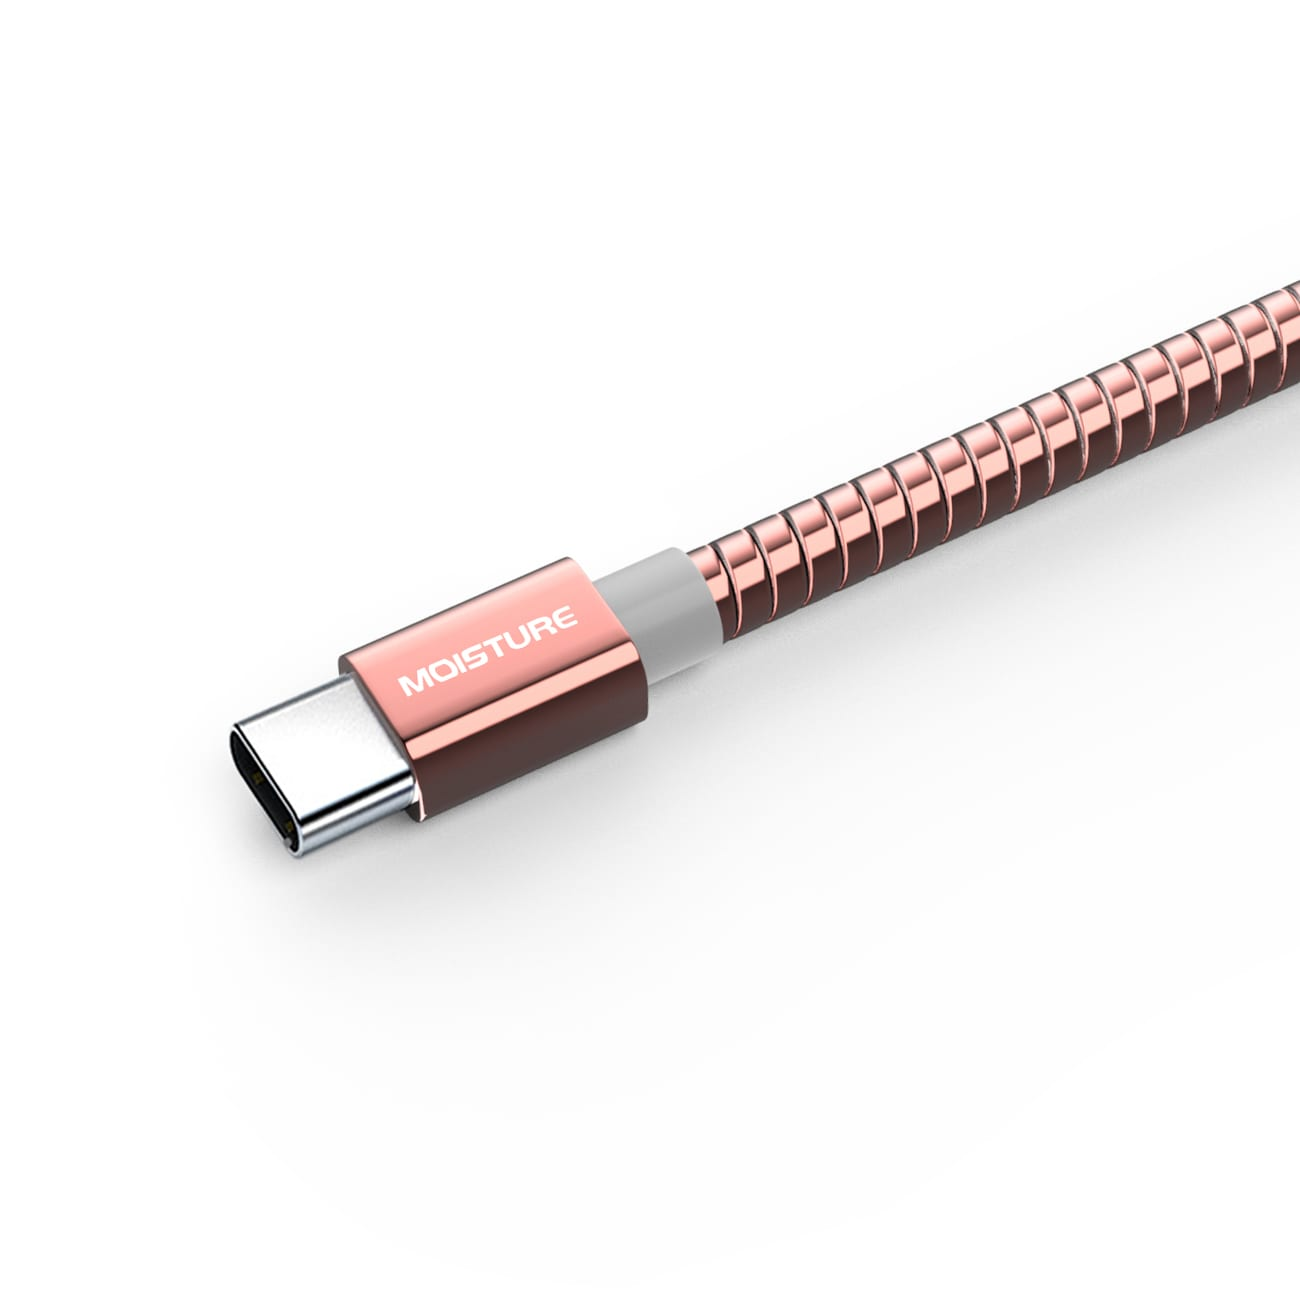 High Speed Type-C Data Cable in Pink